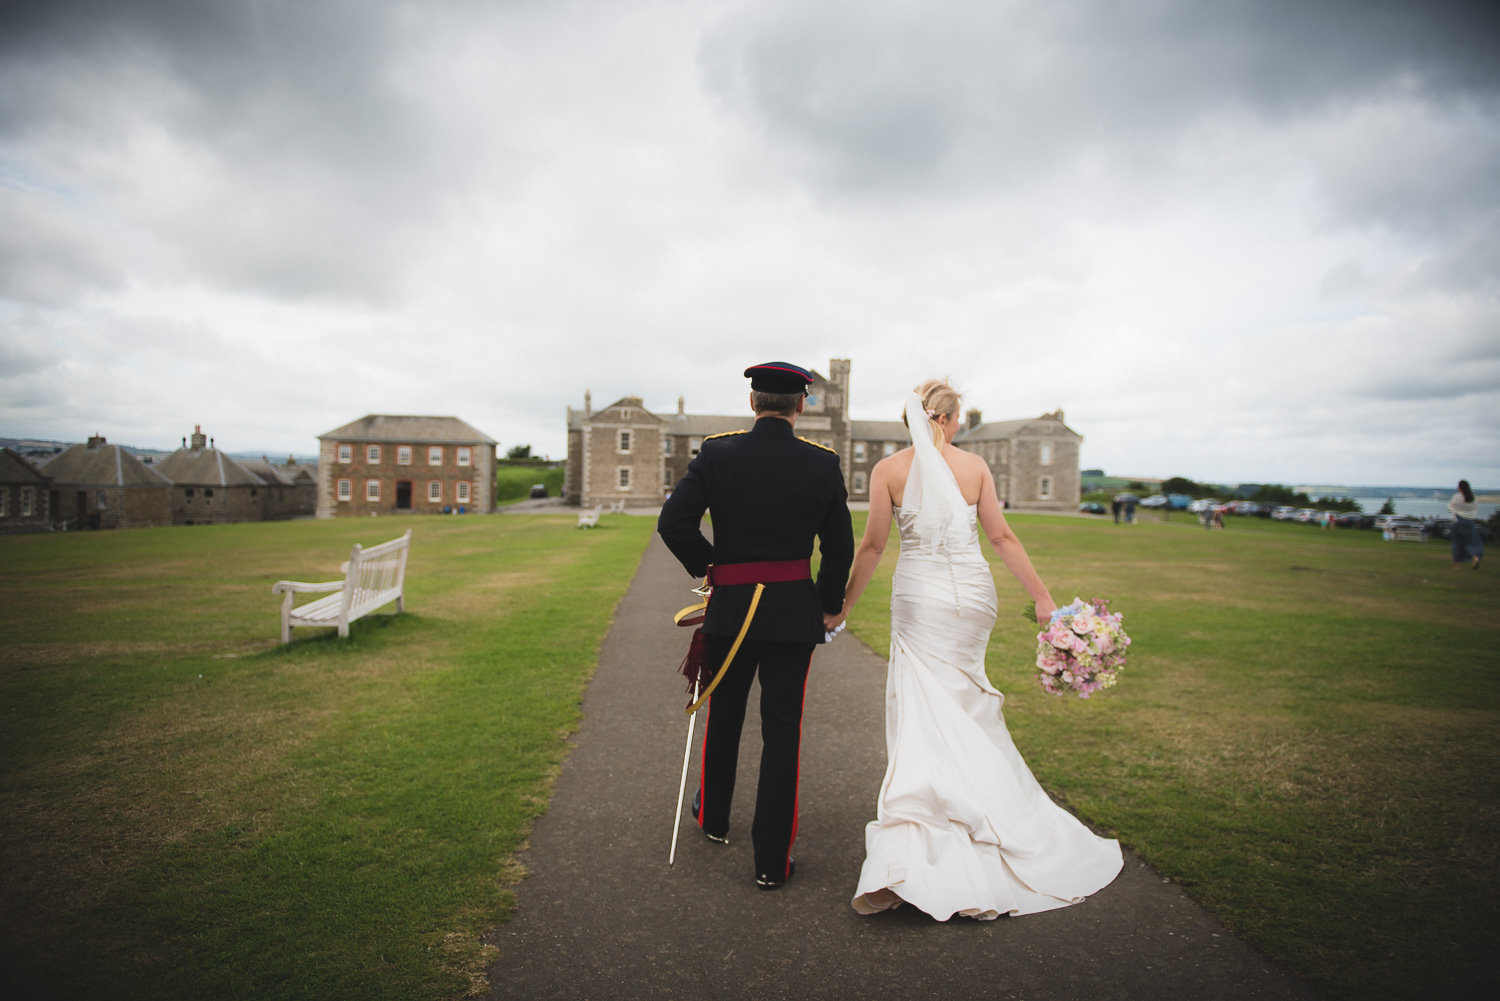 pendennis-castle-wedding-cornwall-photography-6.jpg